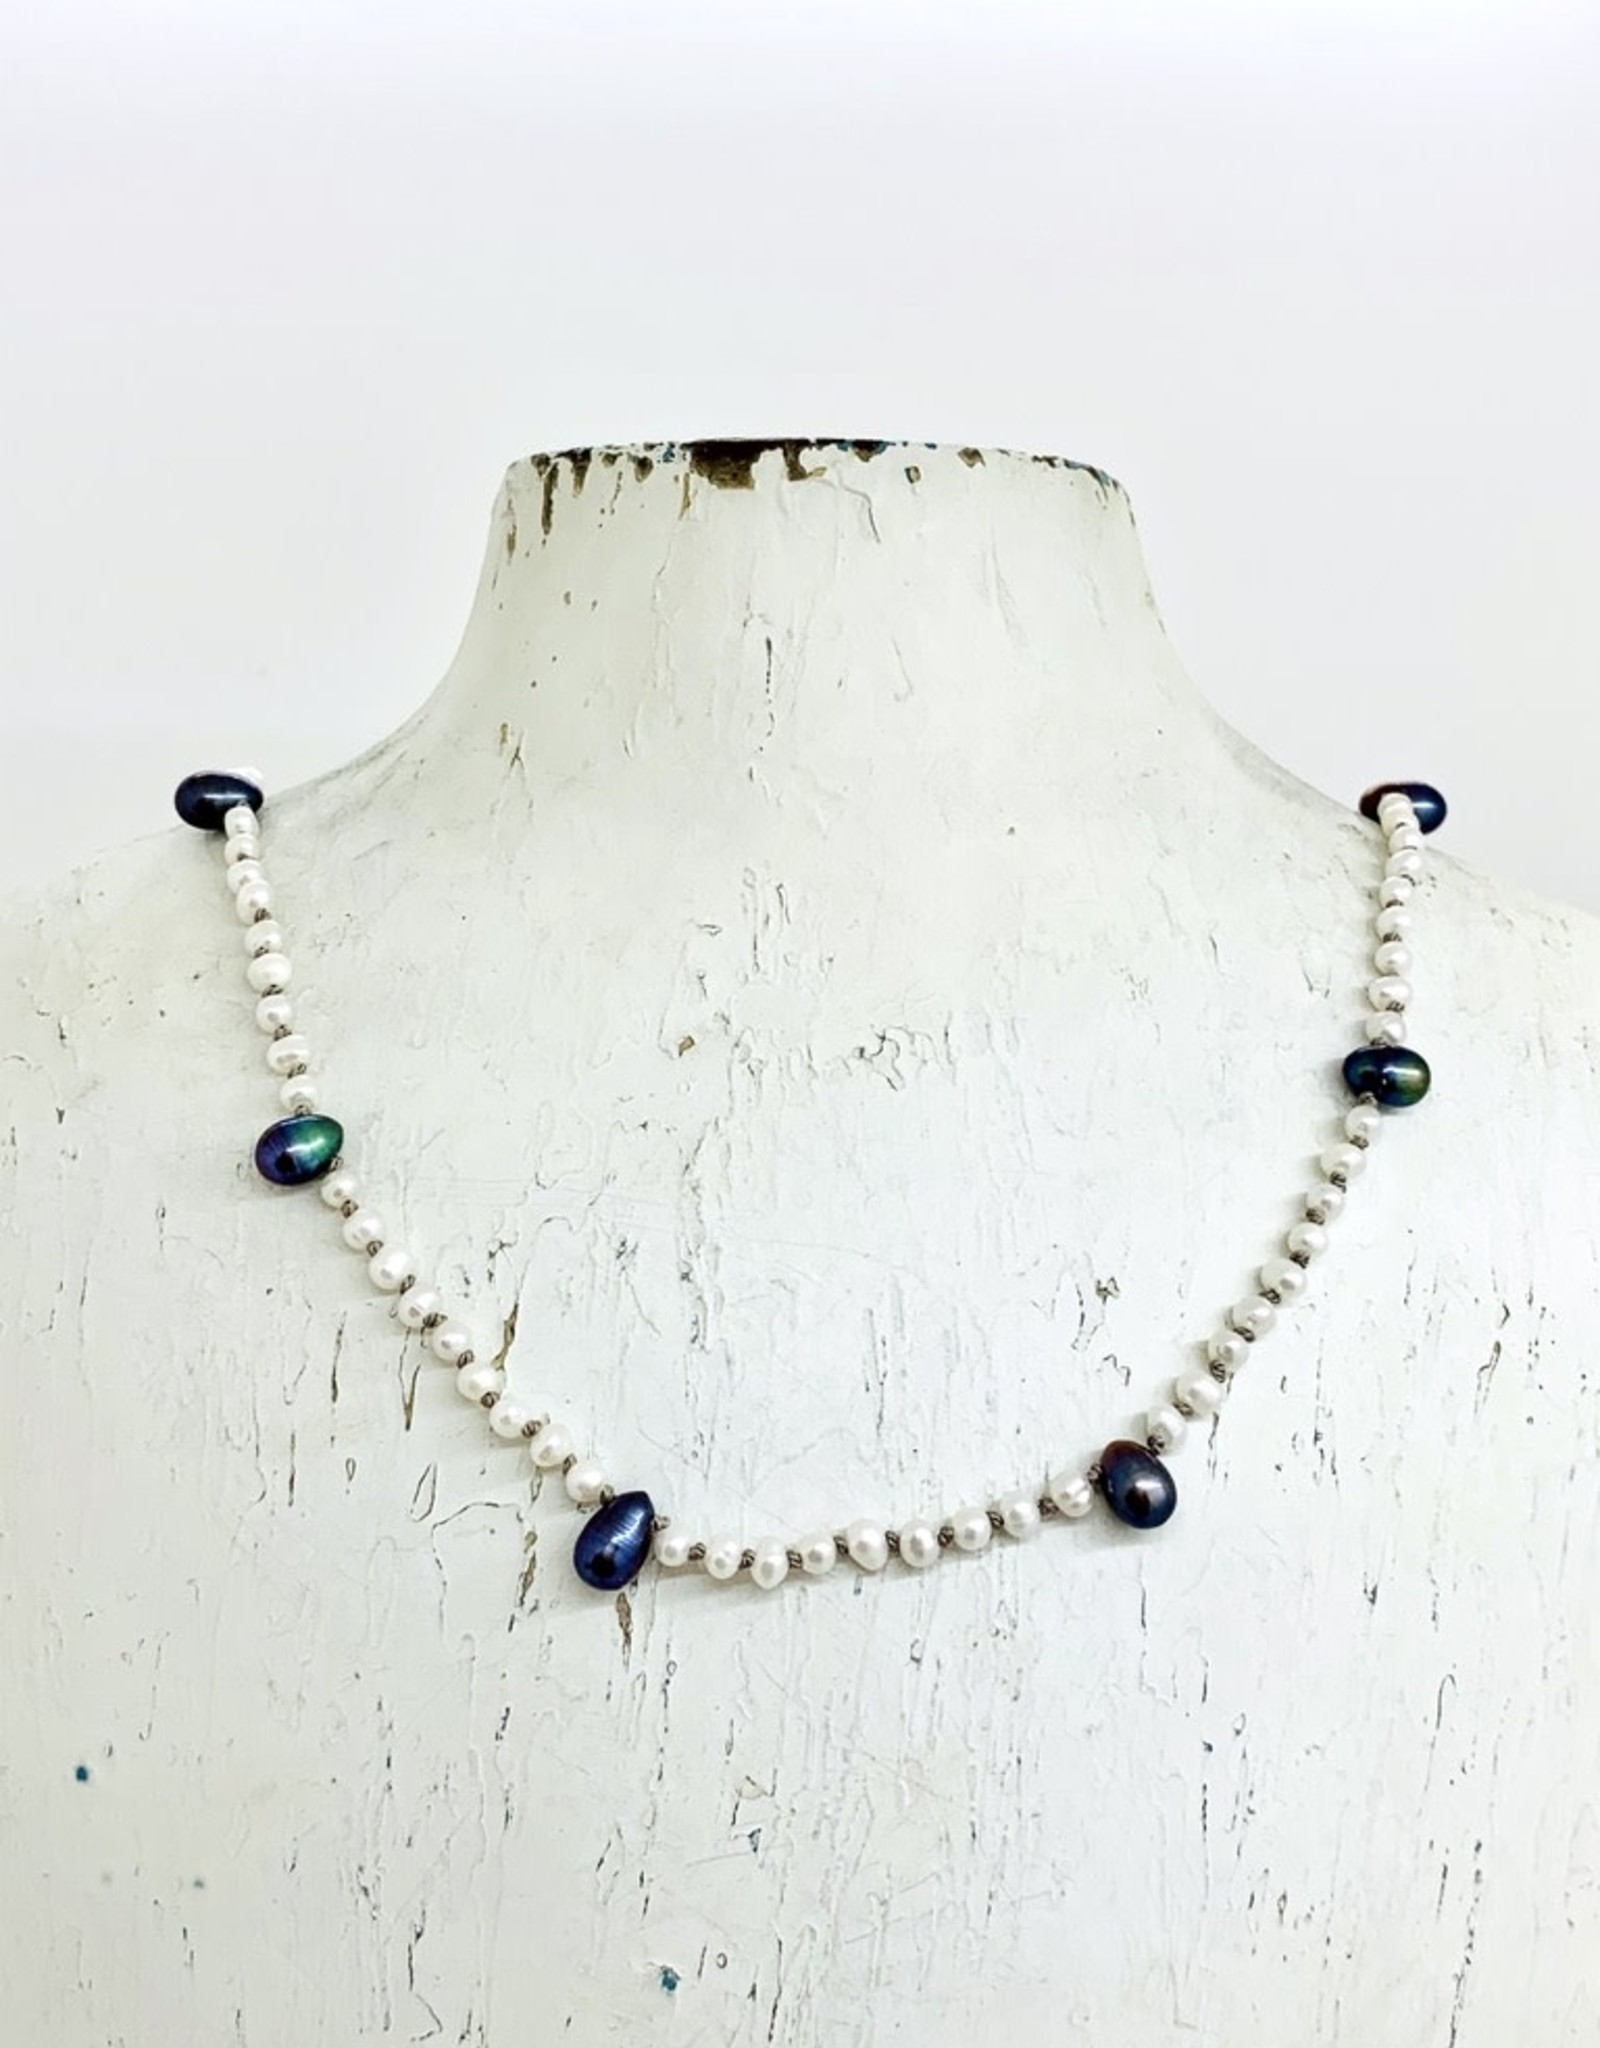 Handmade Silver Necklace with white pearls, 9 peacock pearls knotted on grey silk